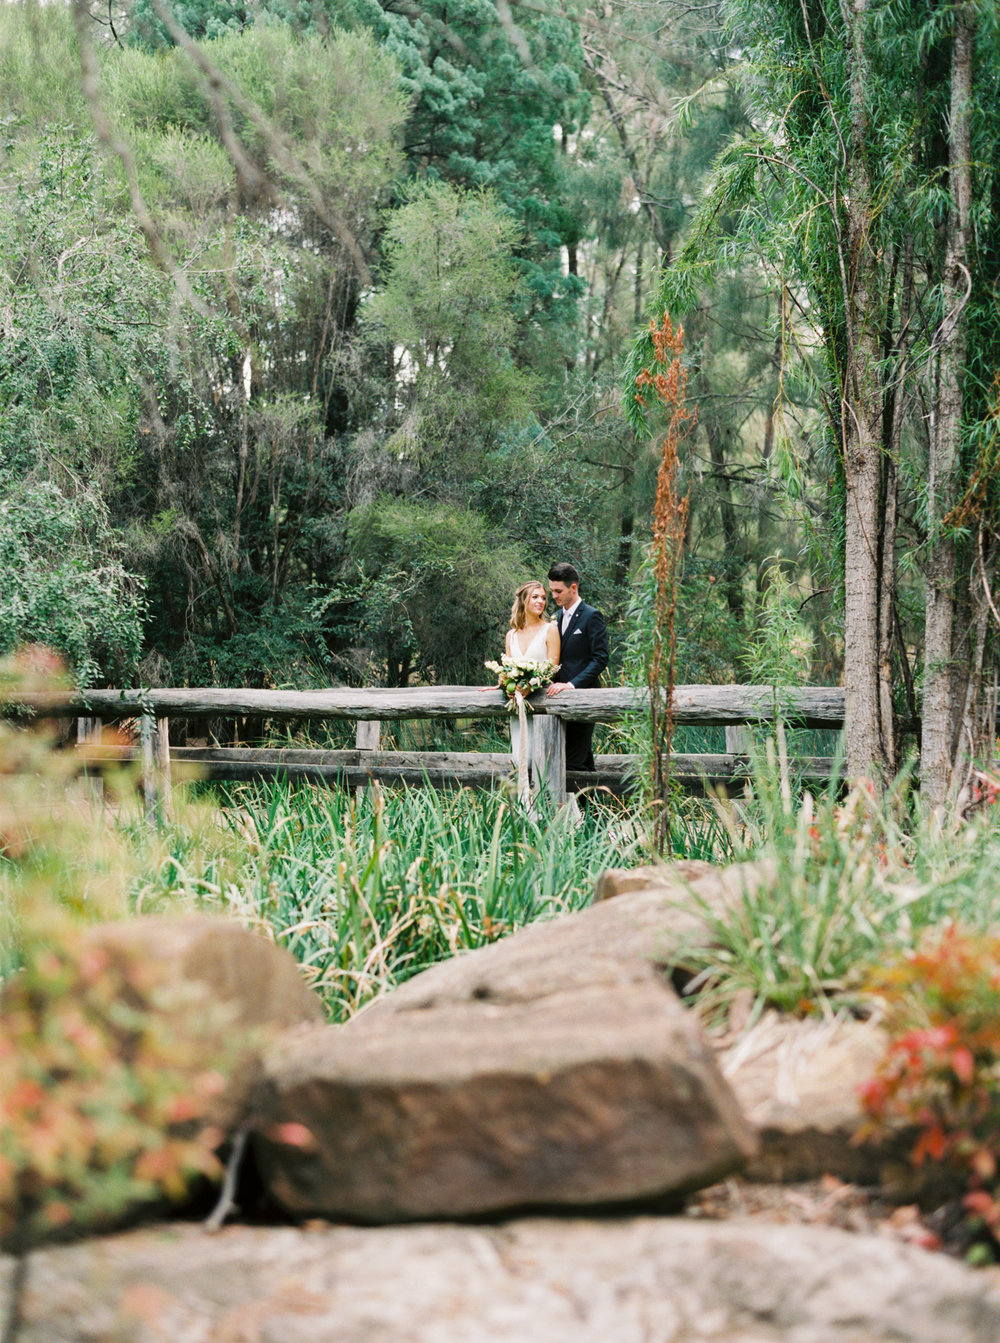 00049- Taronga Zoo Wedding Australia Fine Art Film Photographer Sheri McMahon.jpg